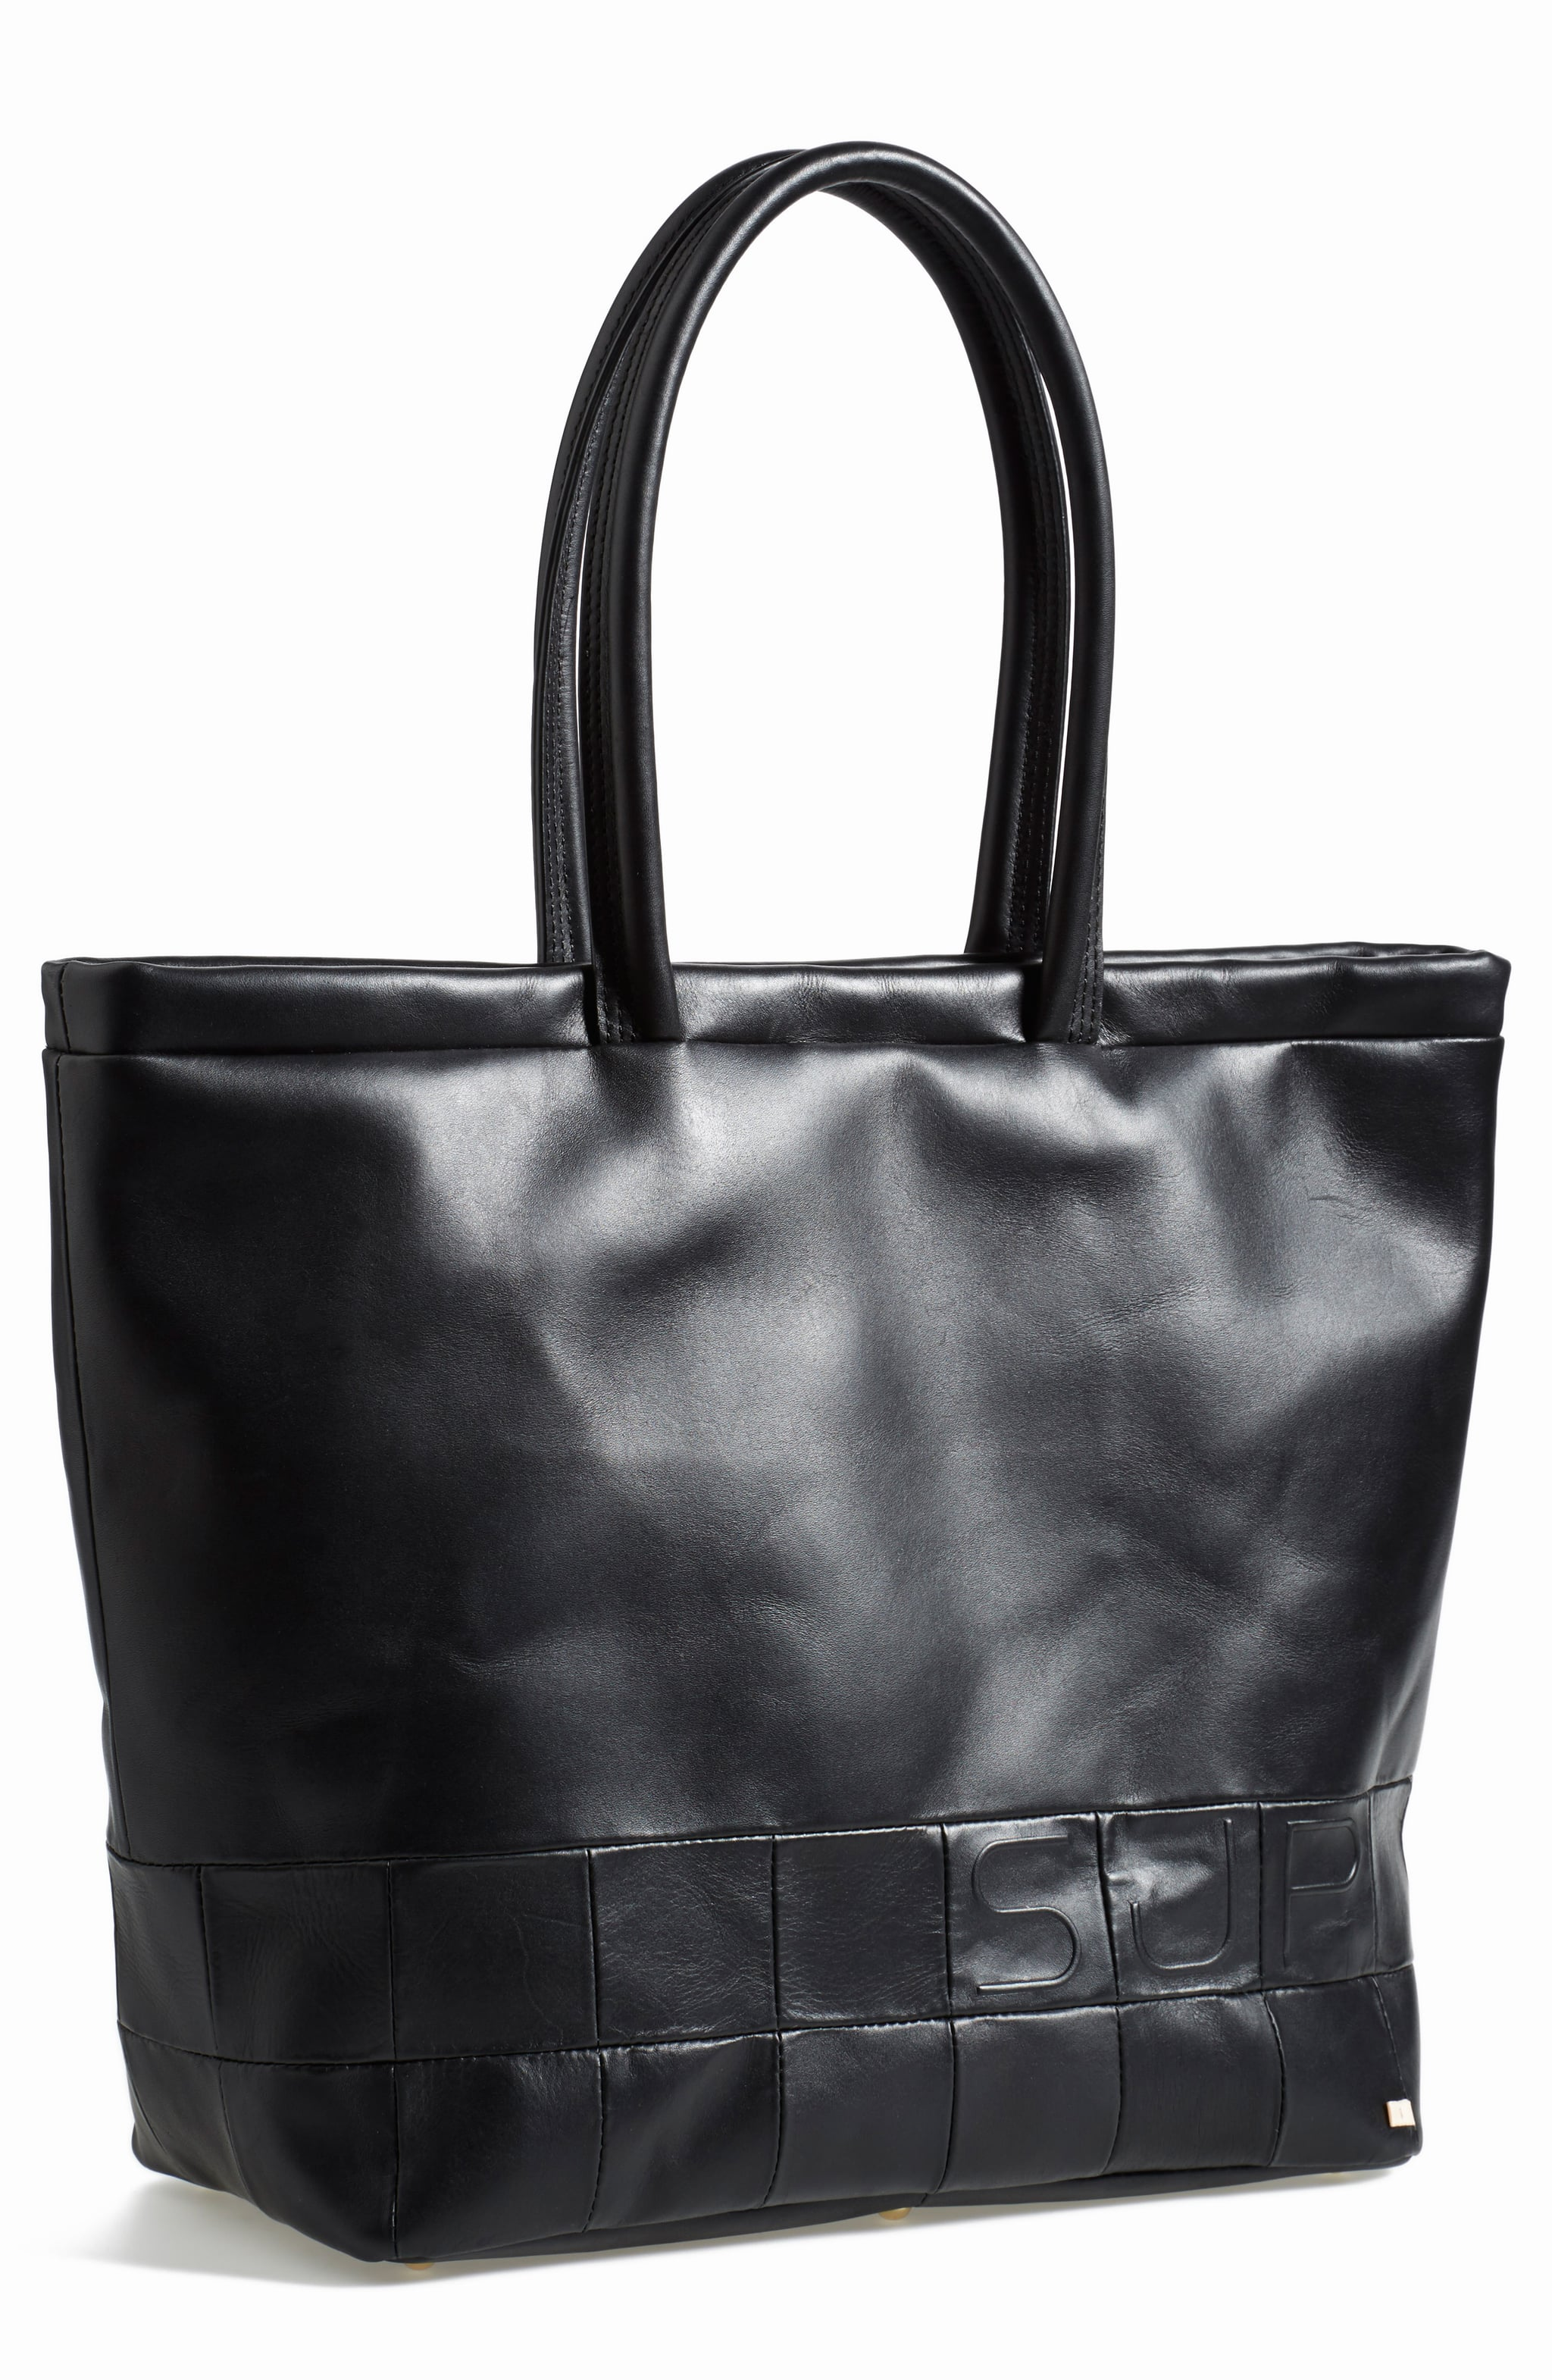 Greenwich Tote in Black, $495